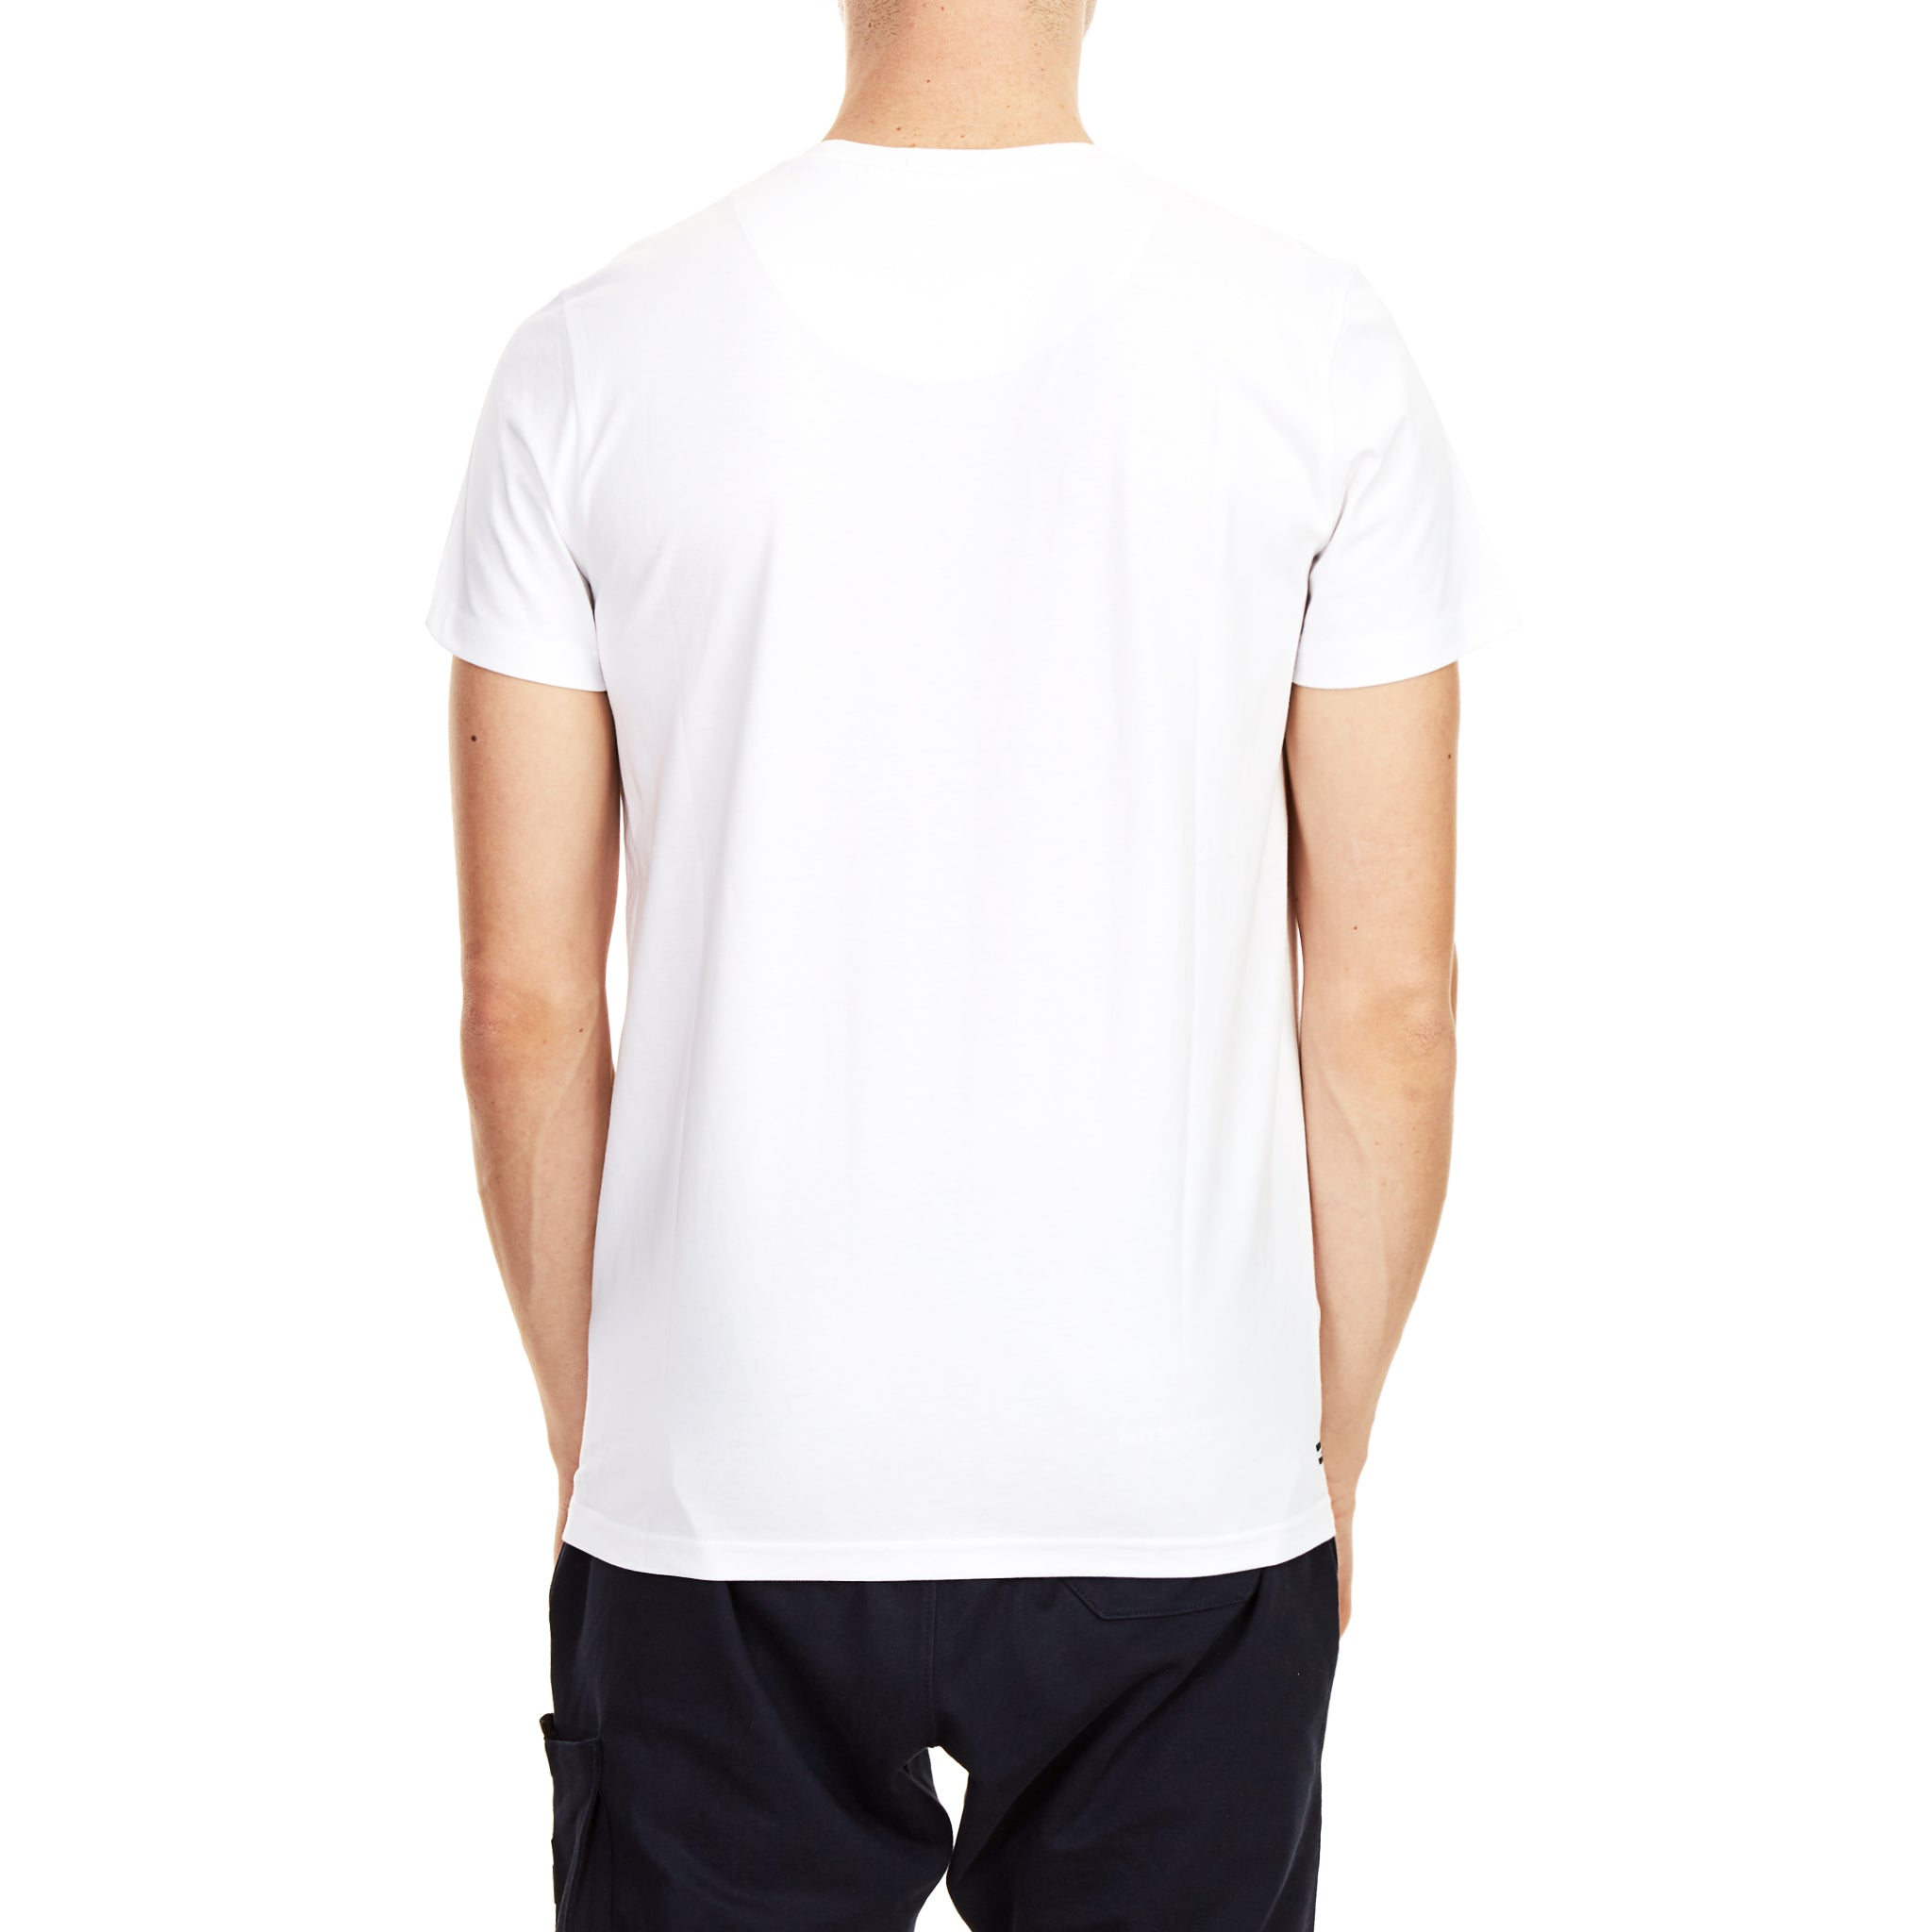 Casuals Tee White